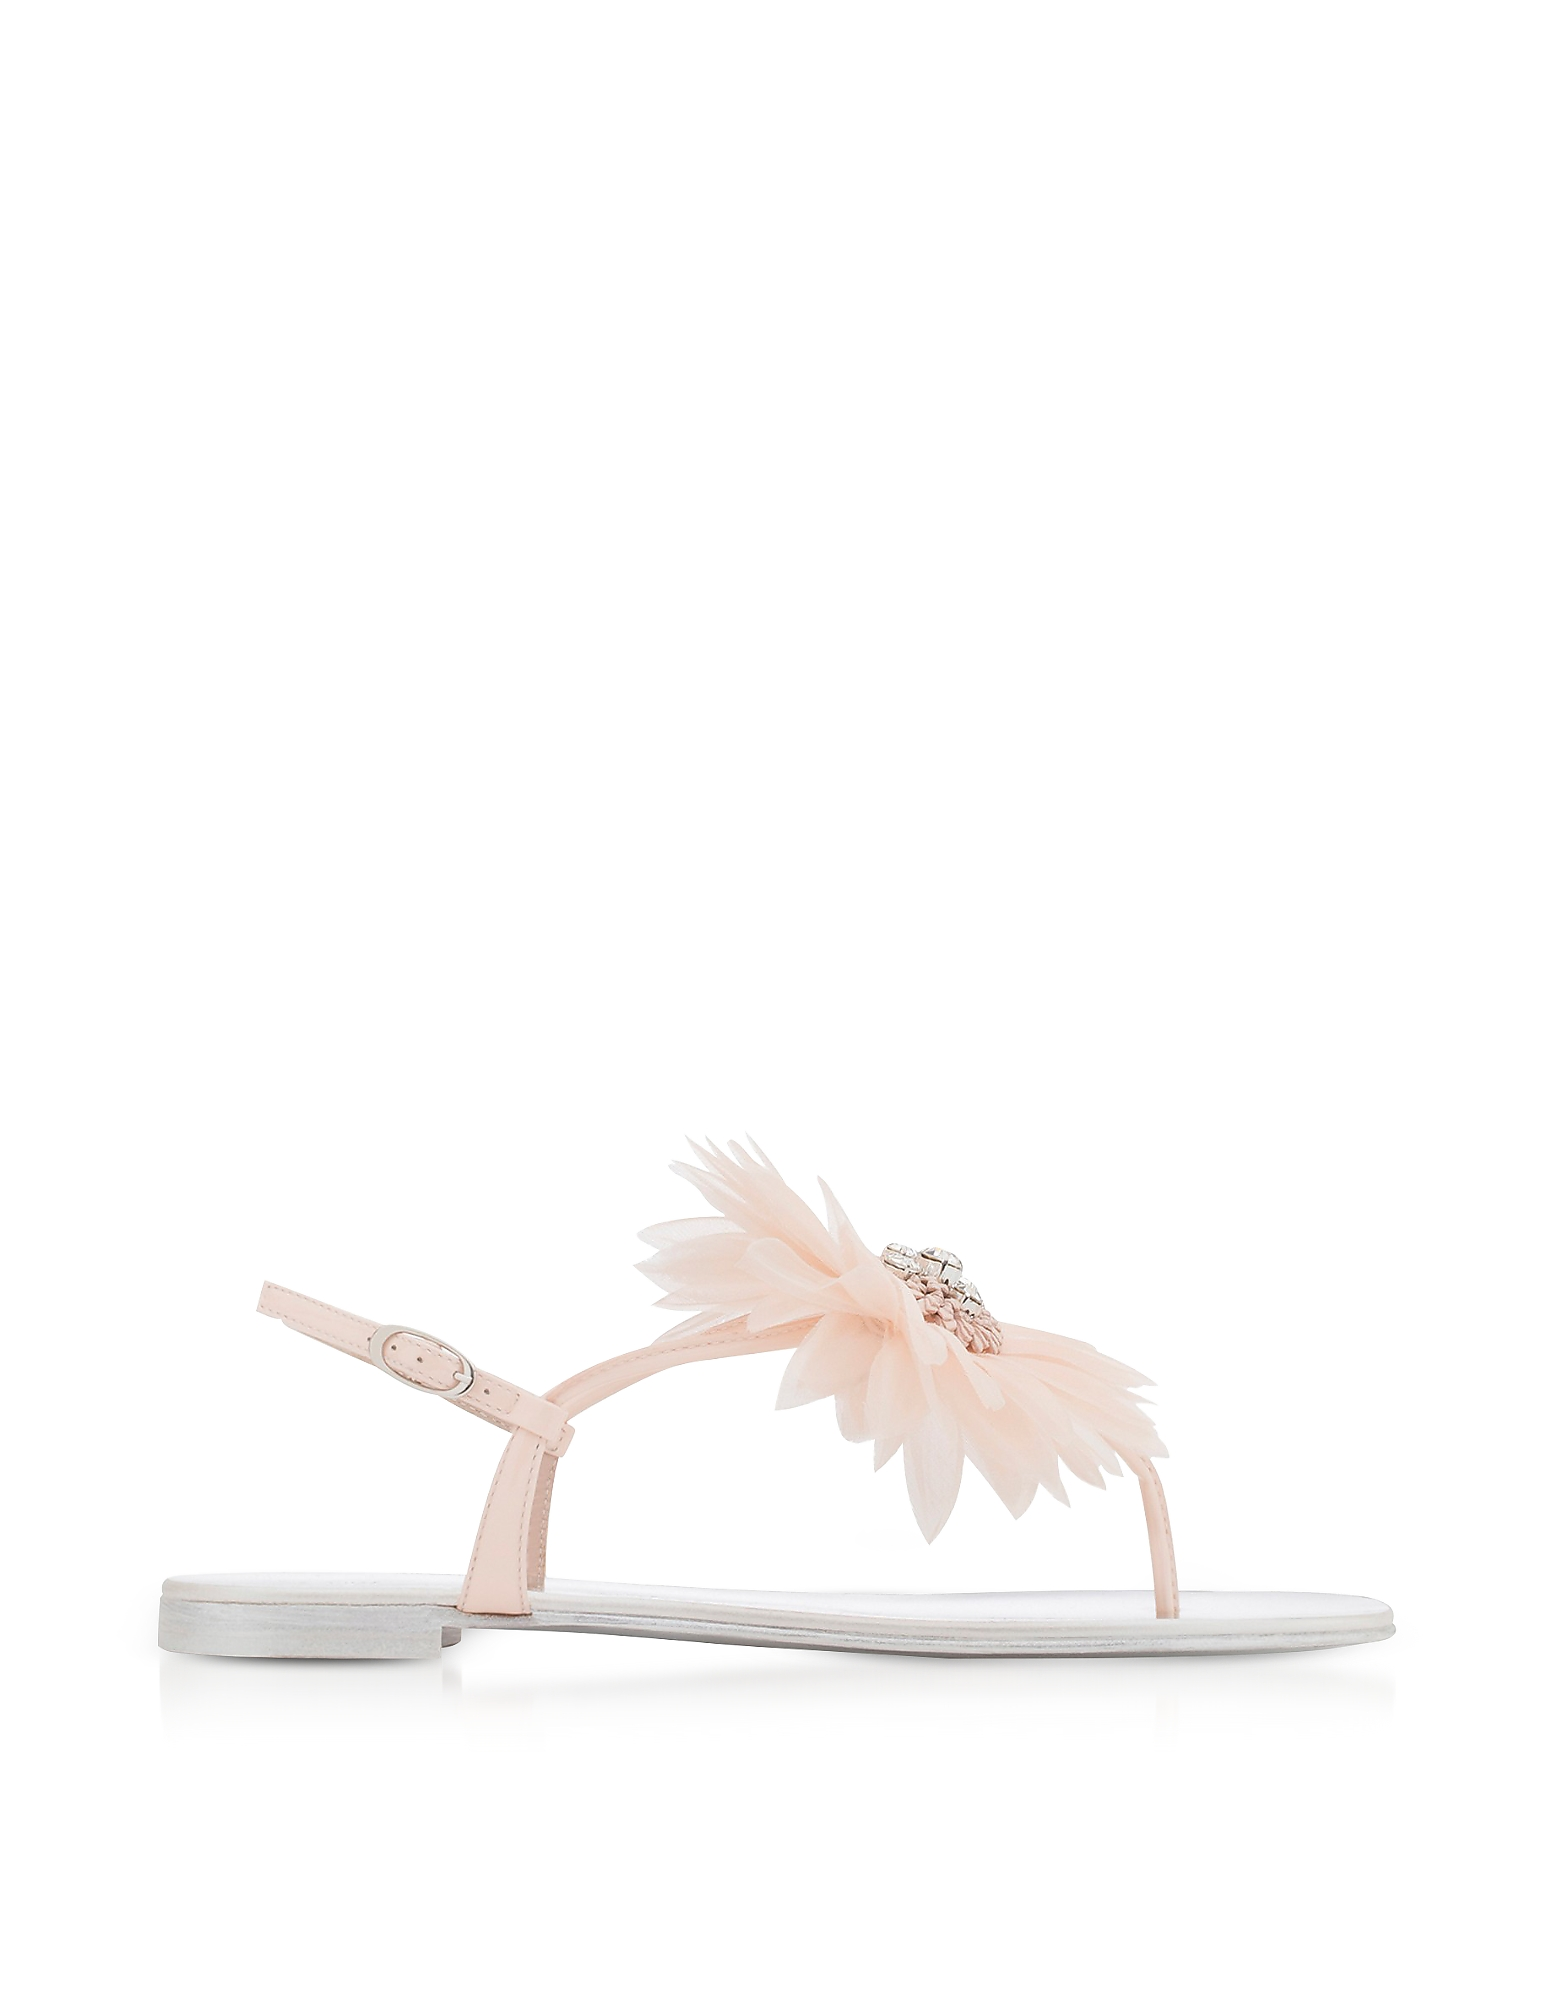 Giuseppe Zanotti Shoes, Annemarie Pink Patent Leather Flat Sandals w/Flower